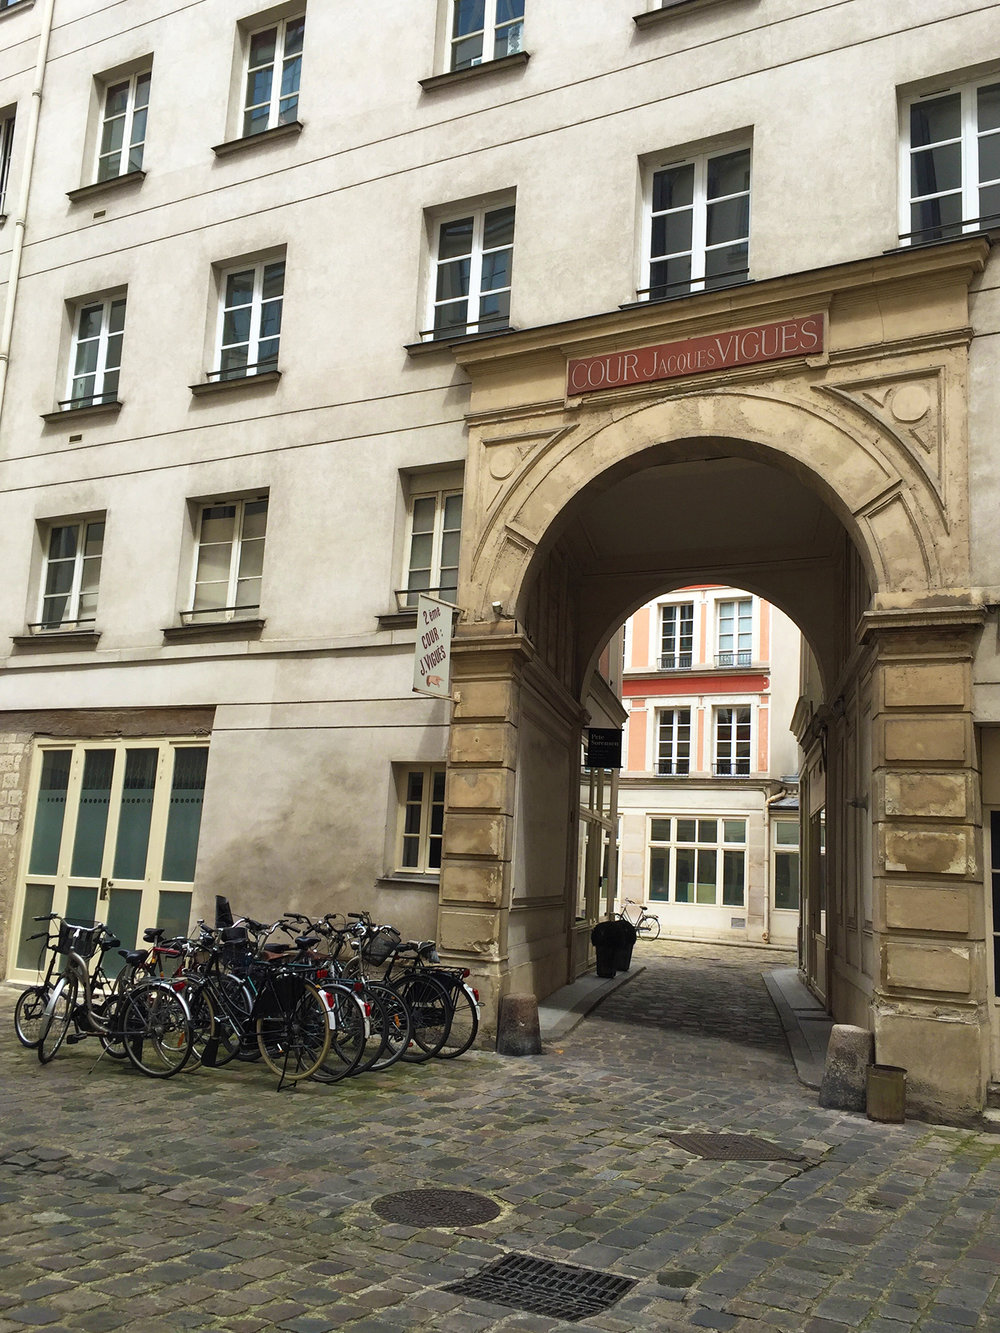 Courtyard entrance in the 12th arrondissement